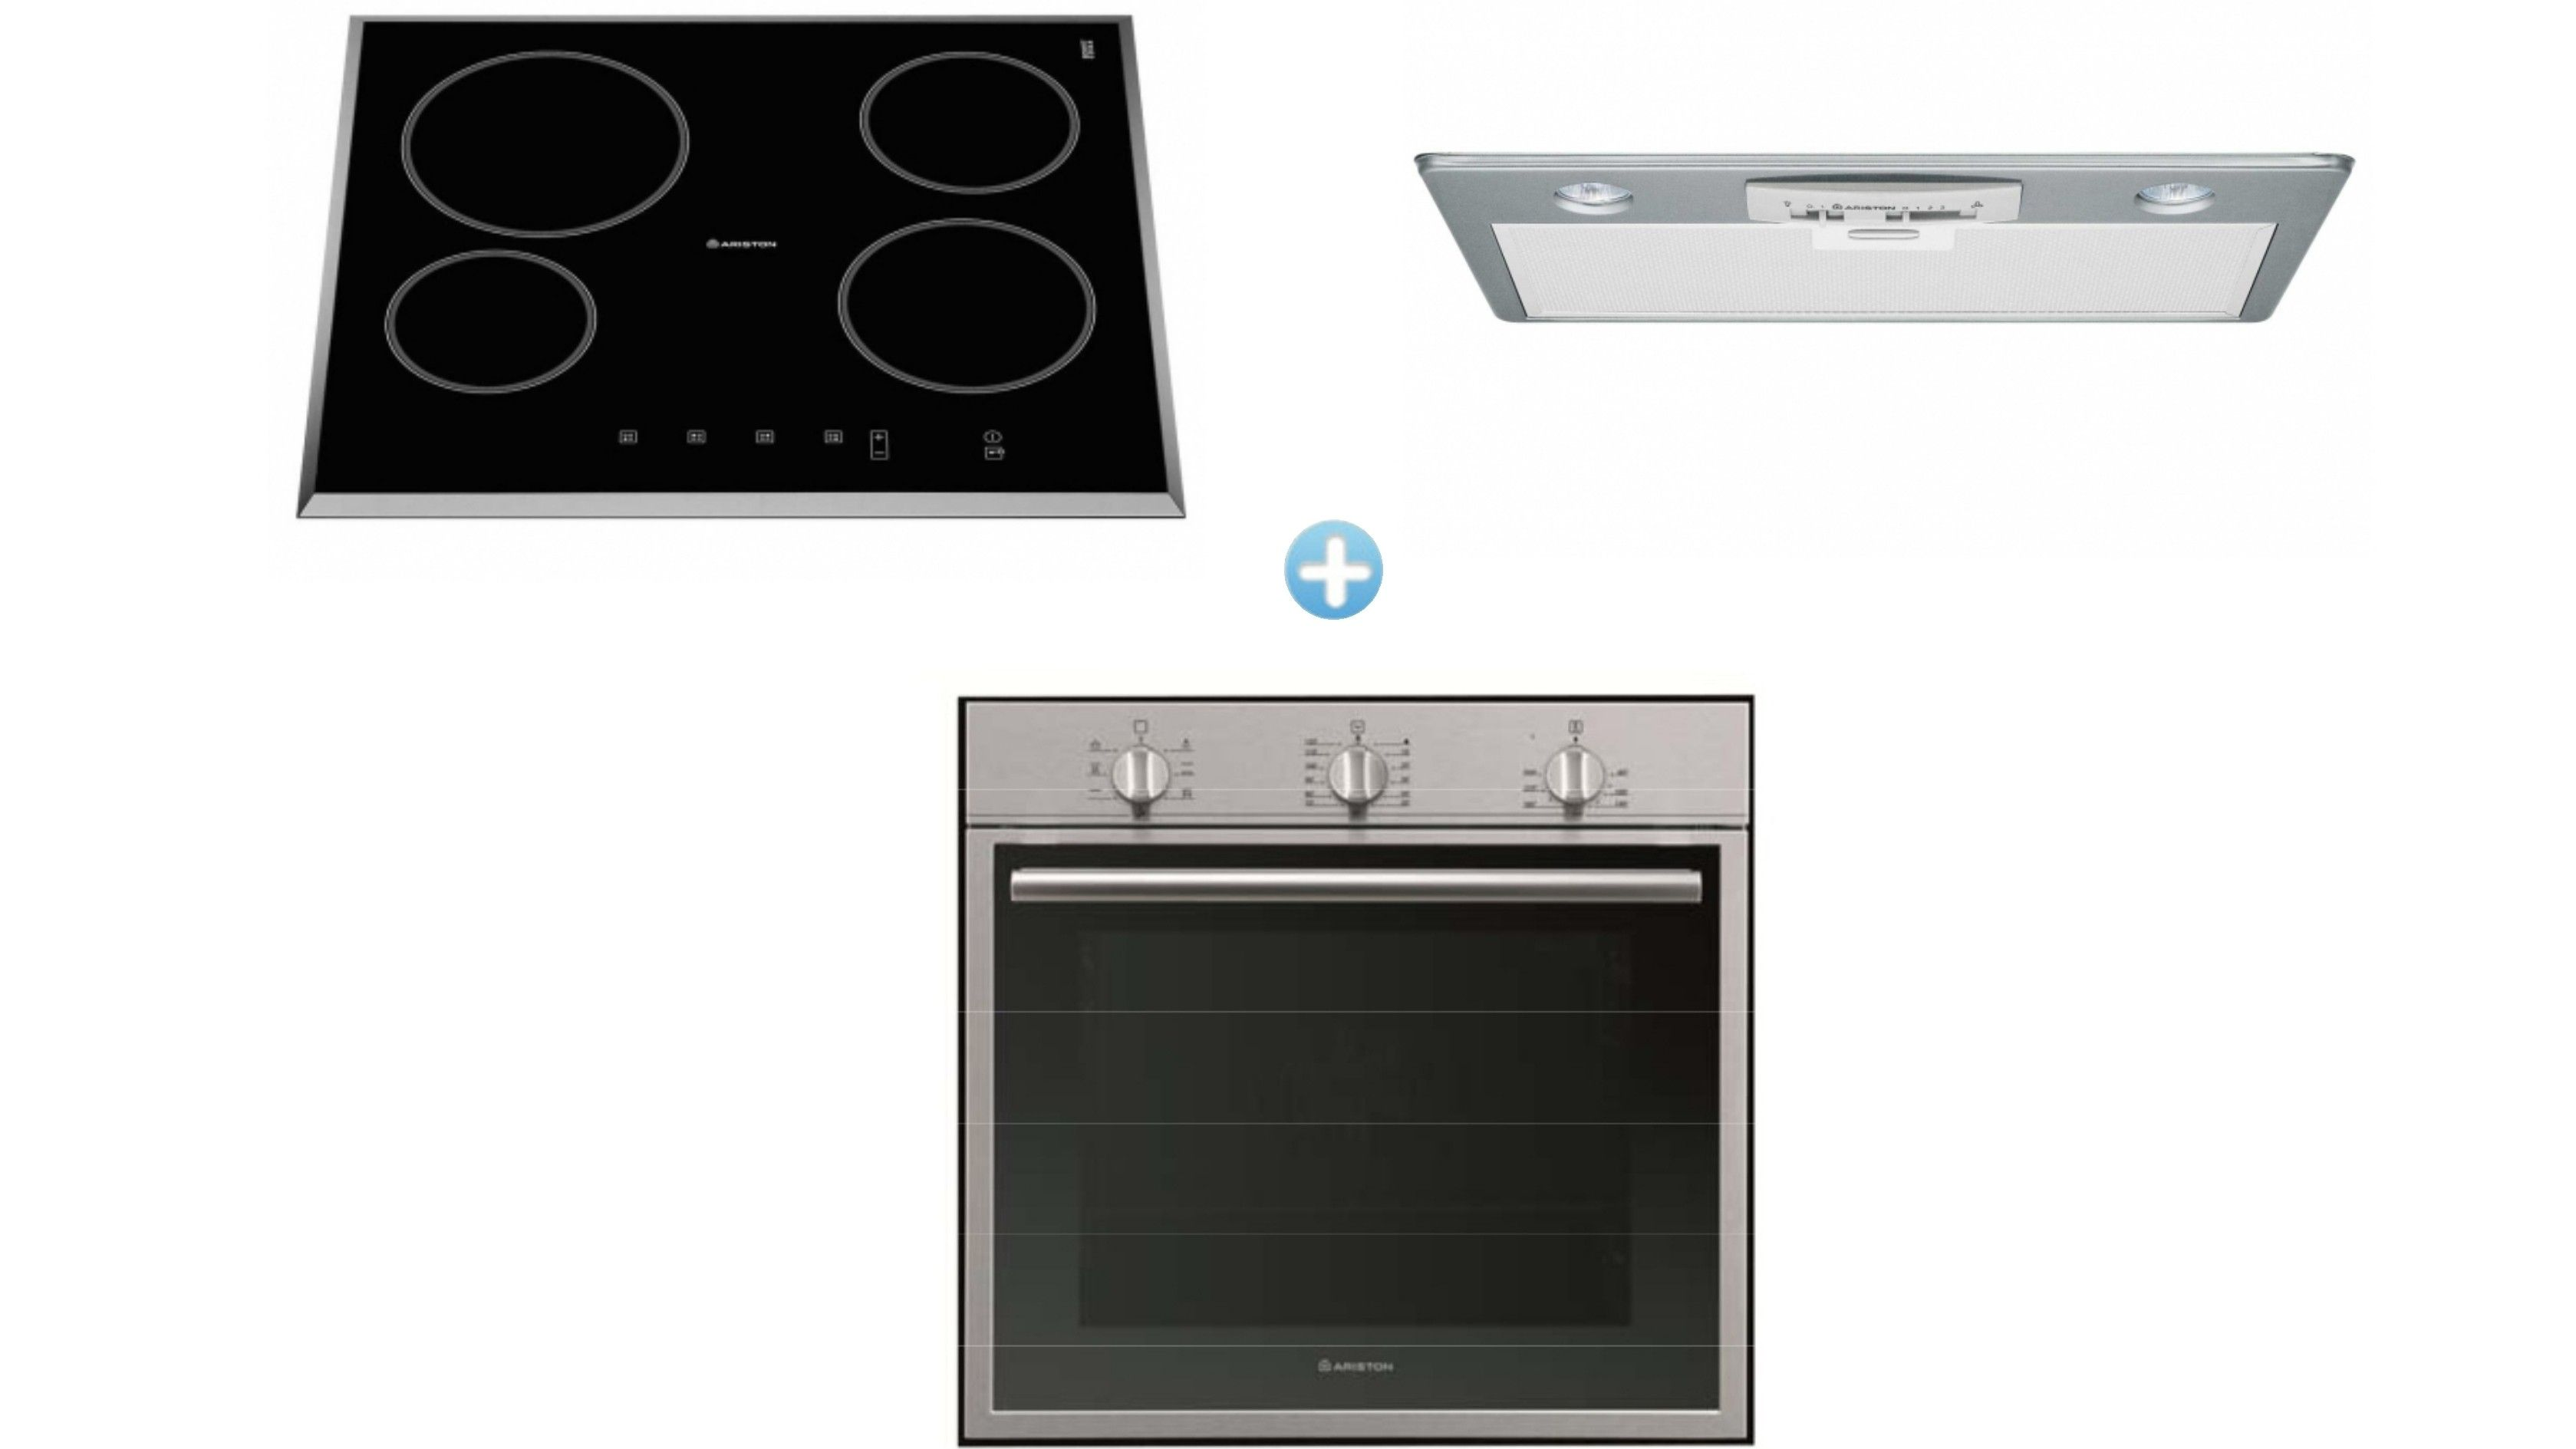 Ariston Cooking Package with Multi-Function Oven Undermount ...